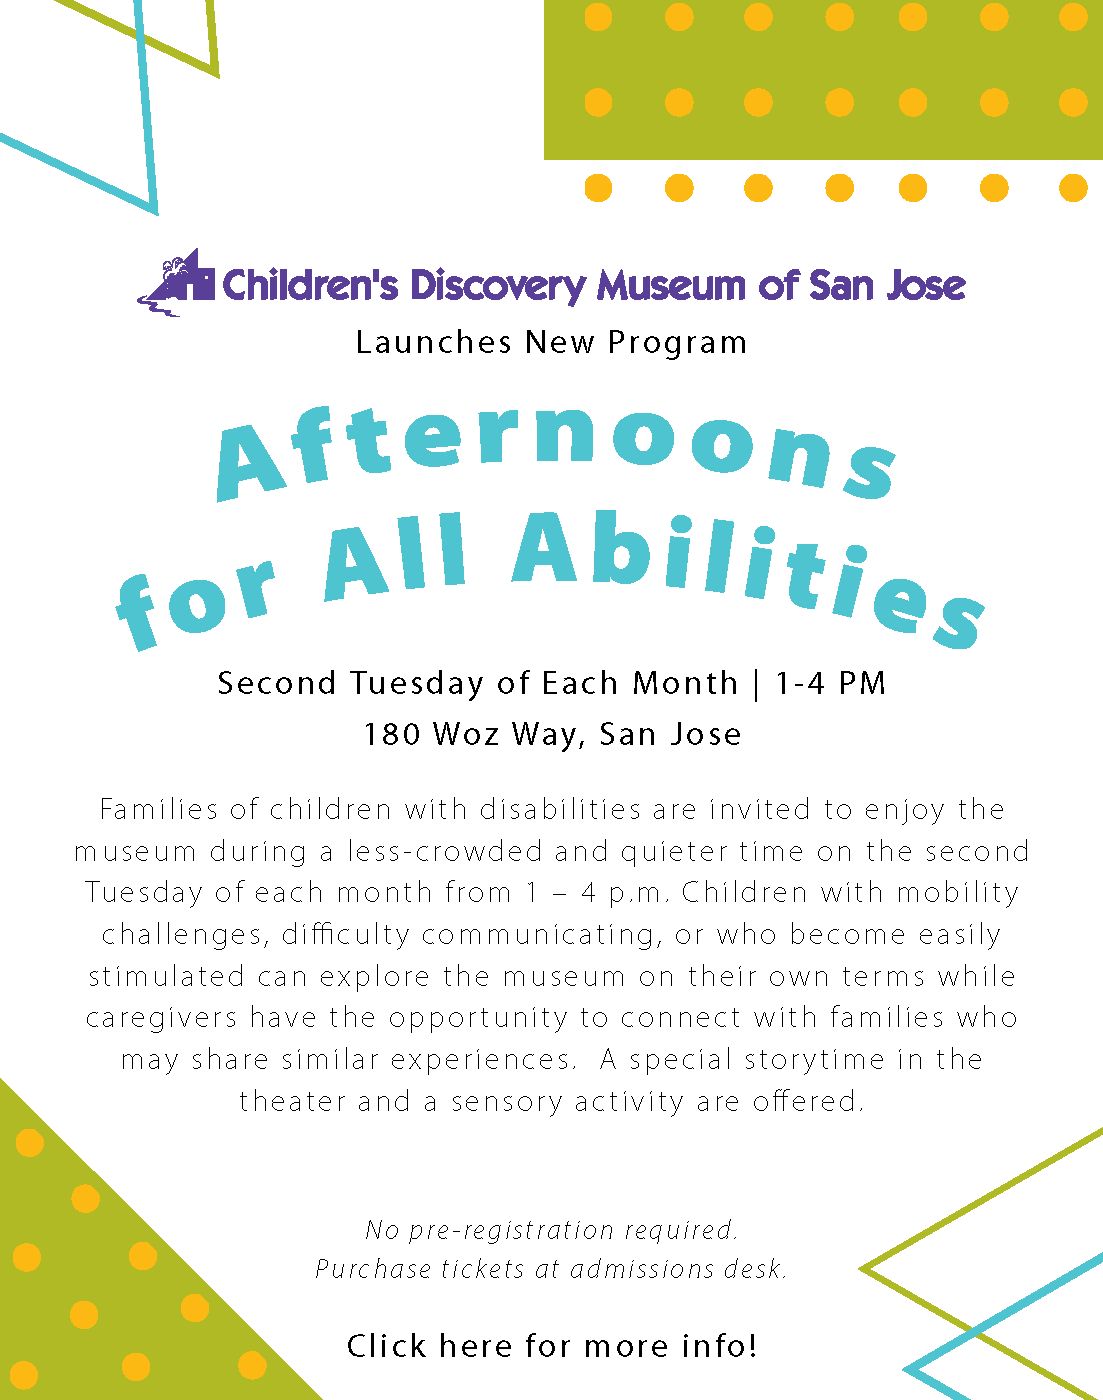 Afternoons for All Abilities